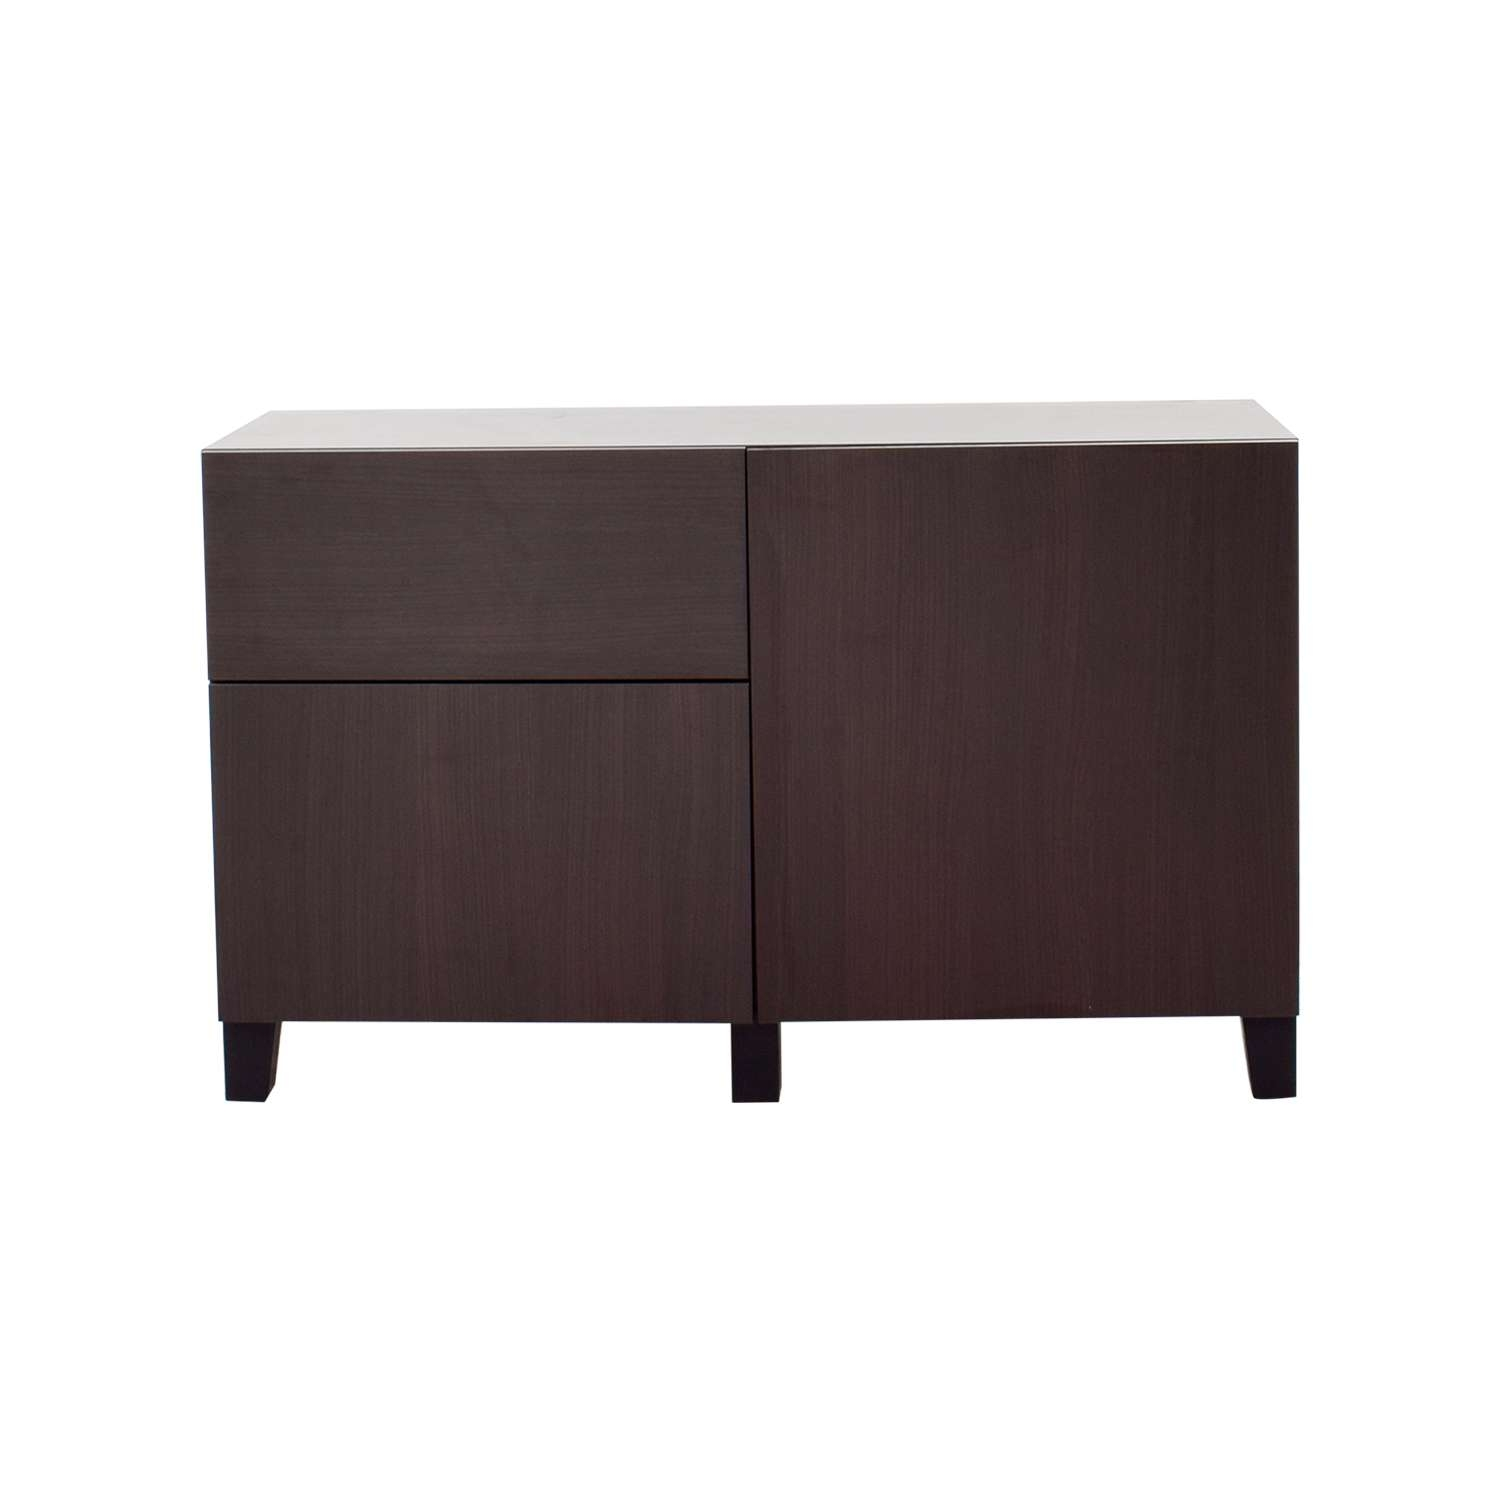 66% Off – Ikea Ikea Dark Brown Storage Sideboard / Storage For Ikea Sideboards (View 1 of 20)